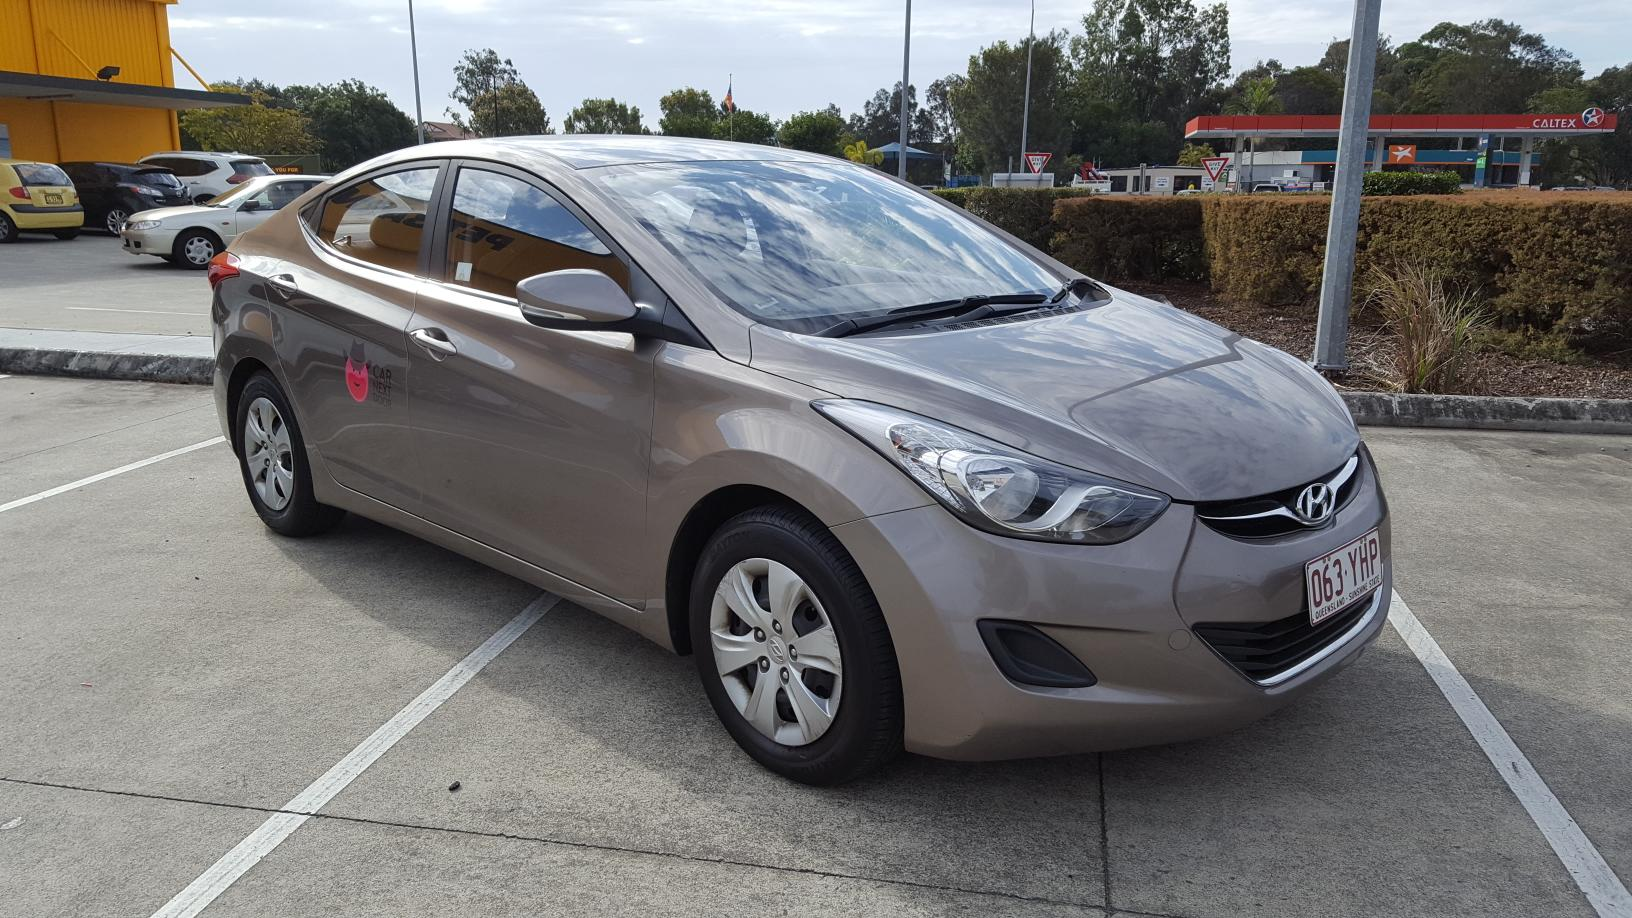 Picture of Jennifer's 2013 Hyundai Elantra